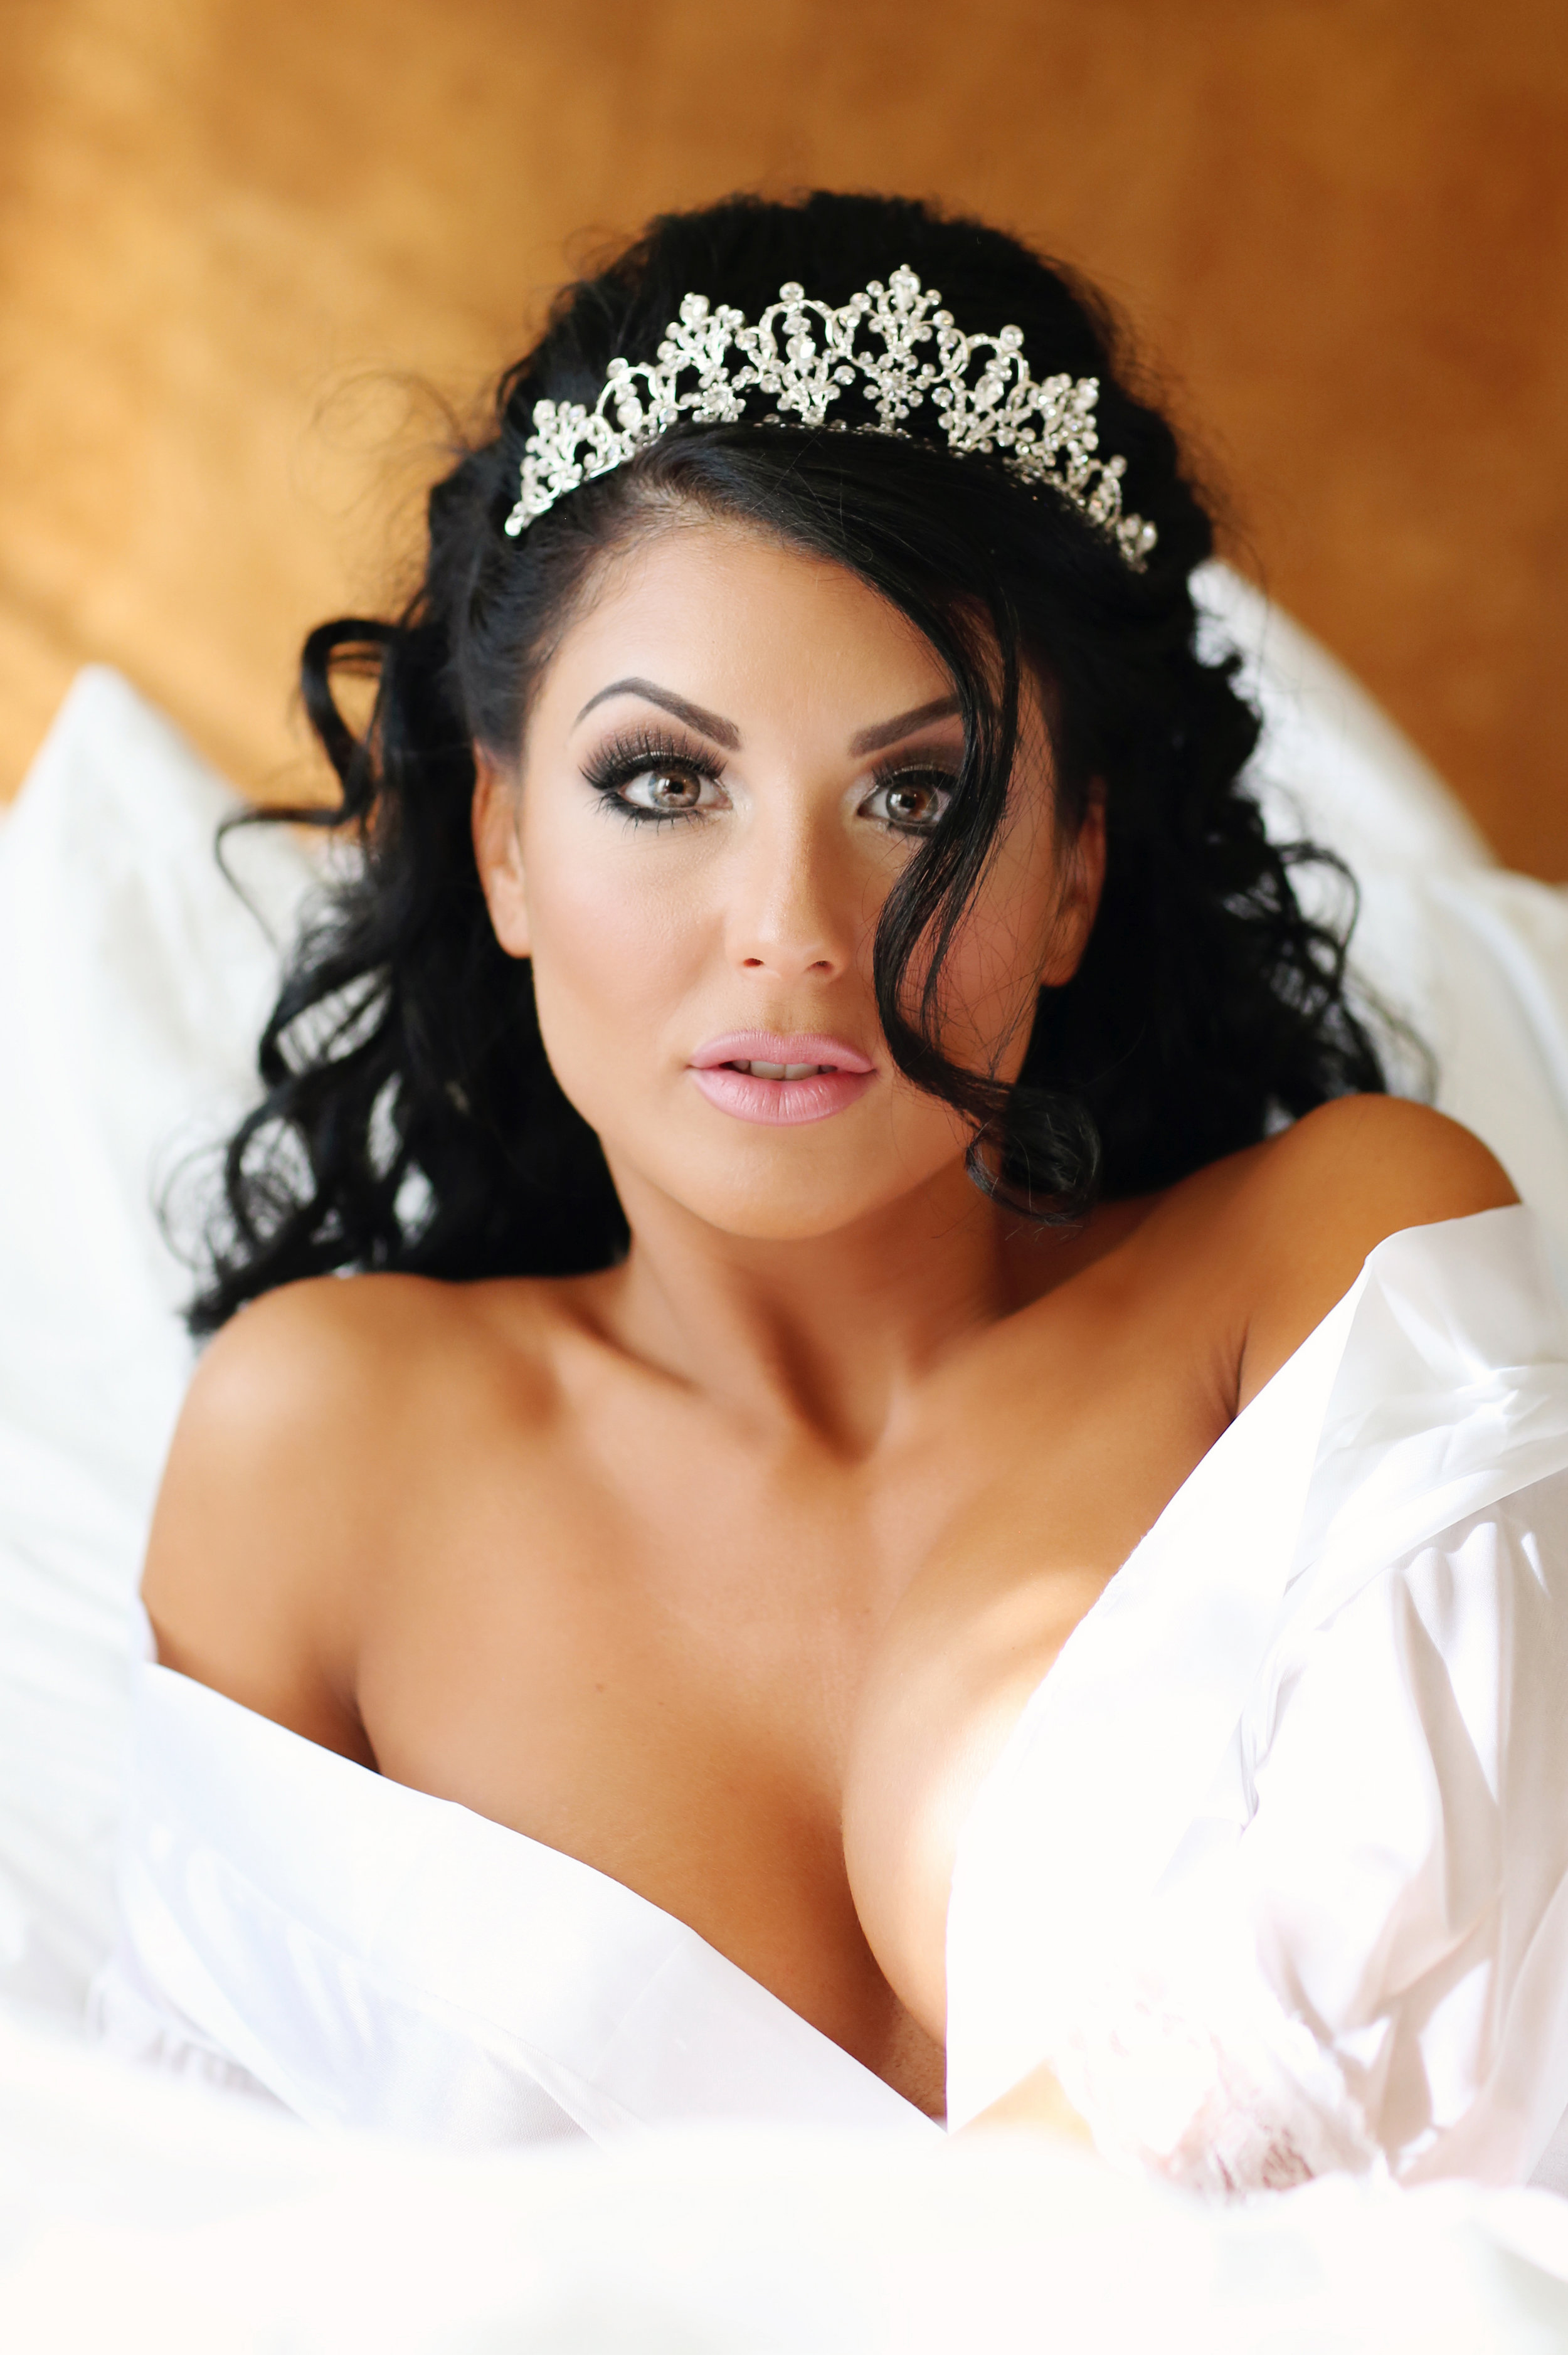 black haired model in sexy pose wearing a crown portrait.  Boudoir